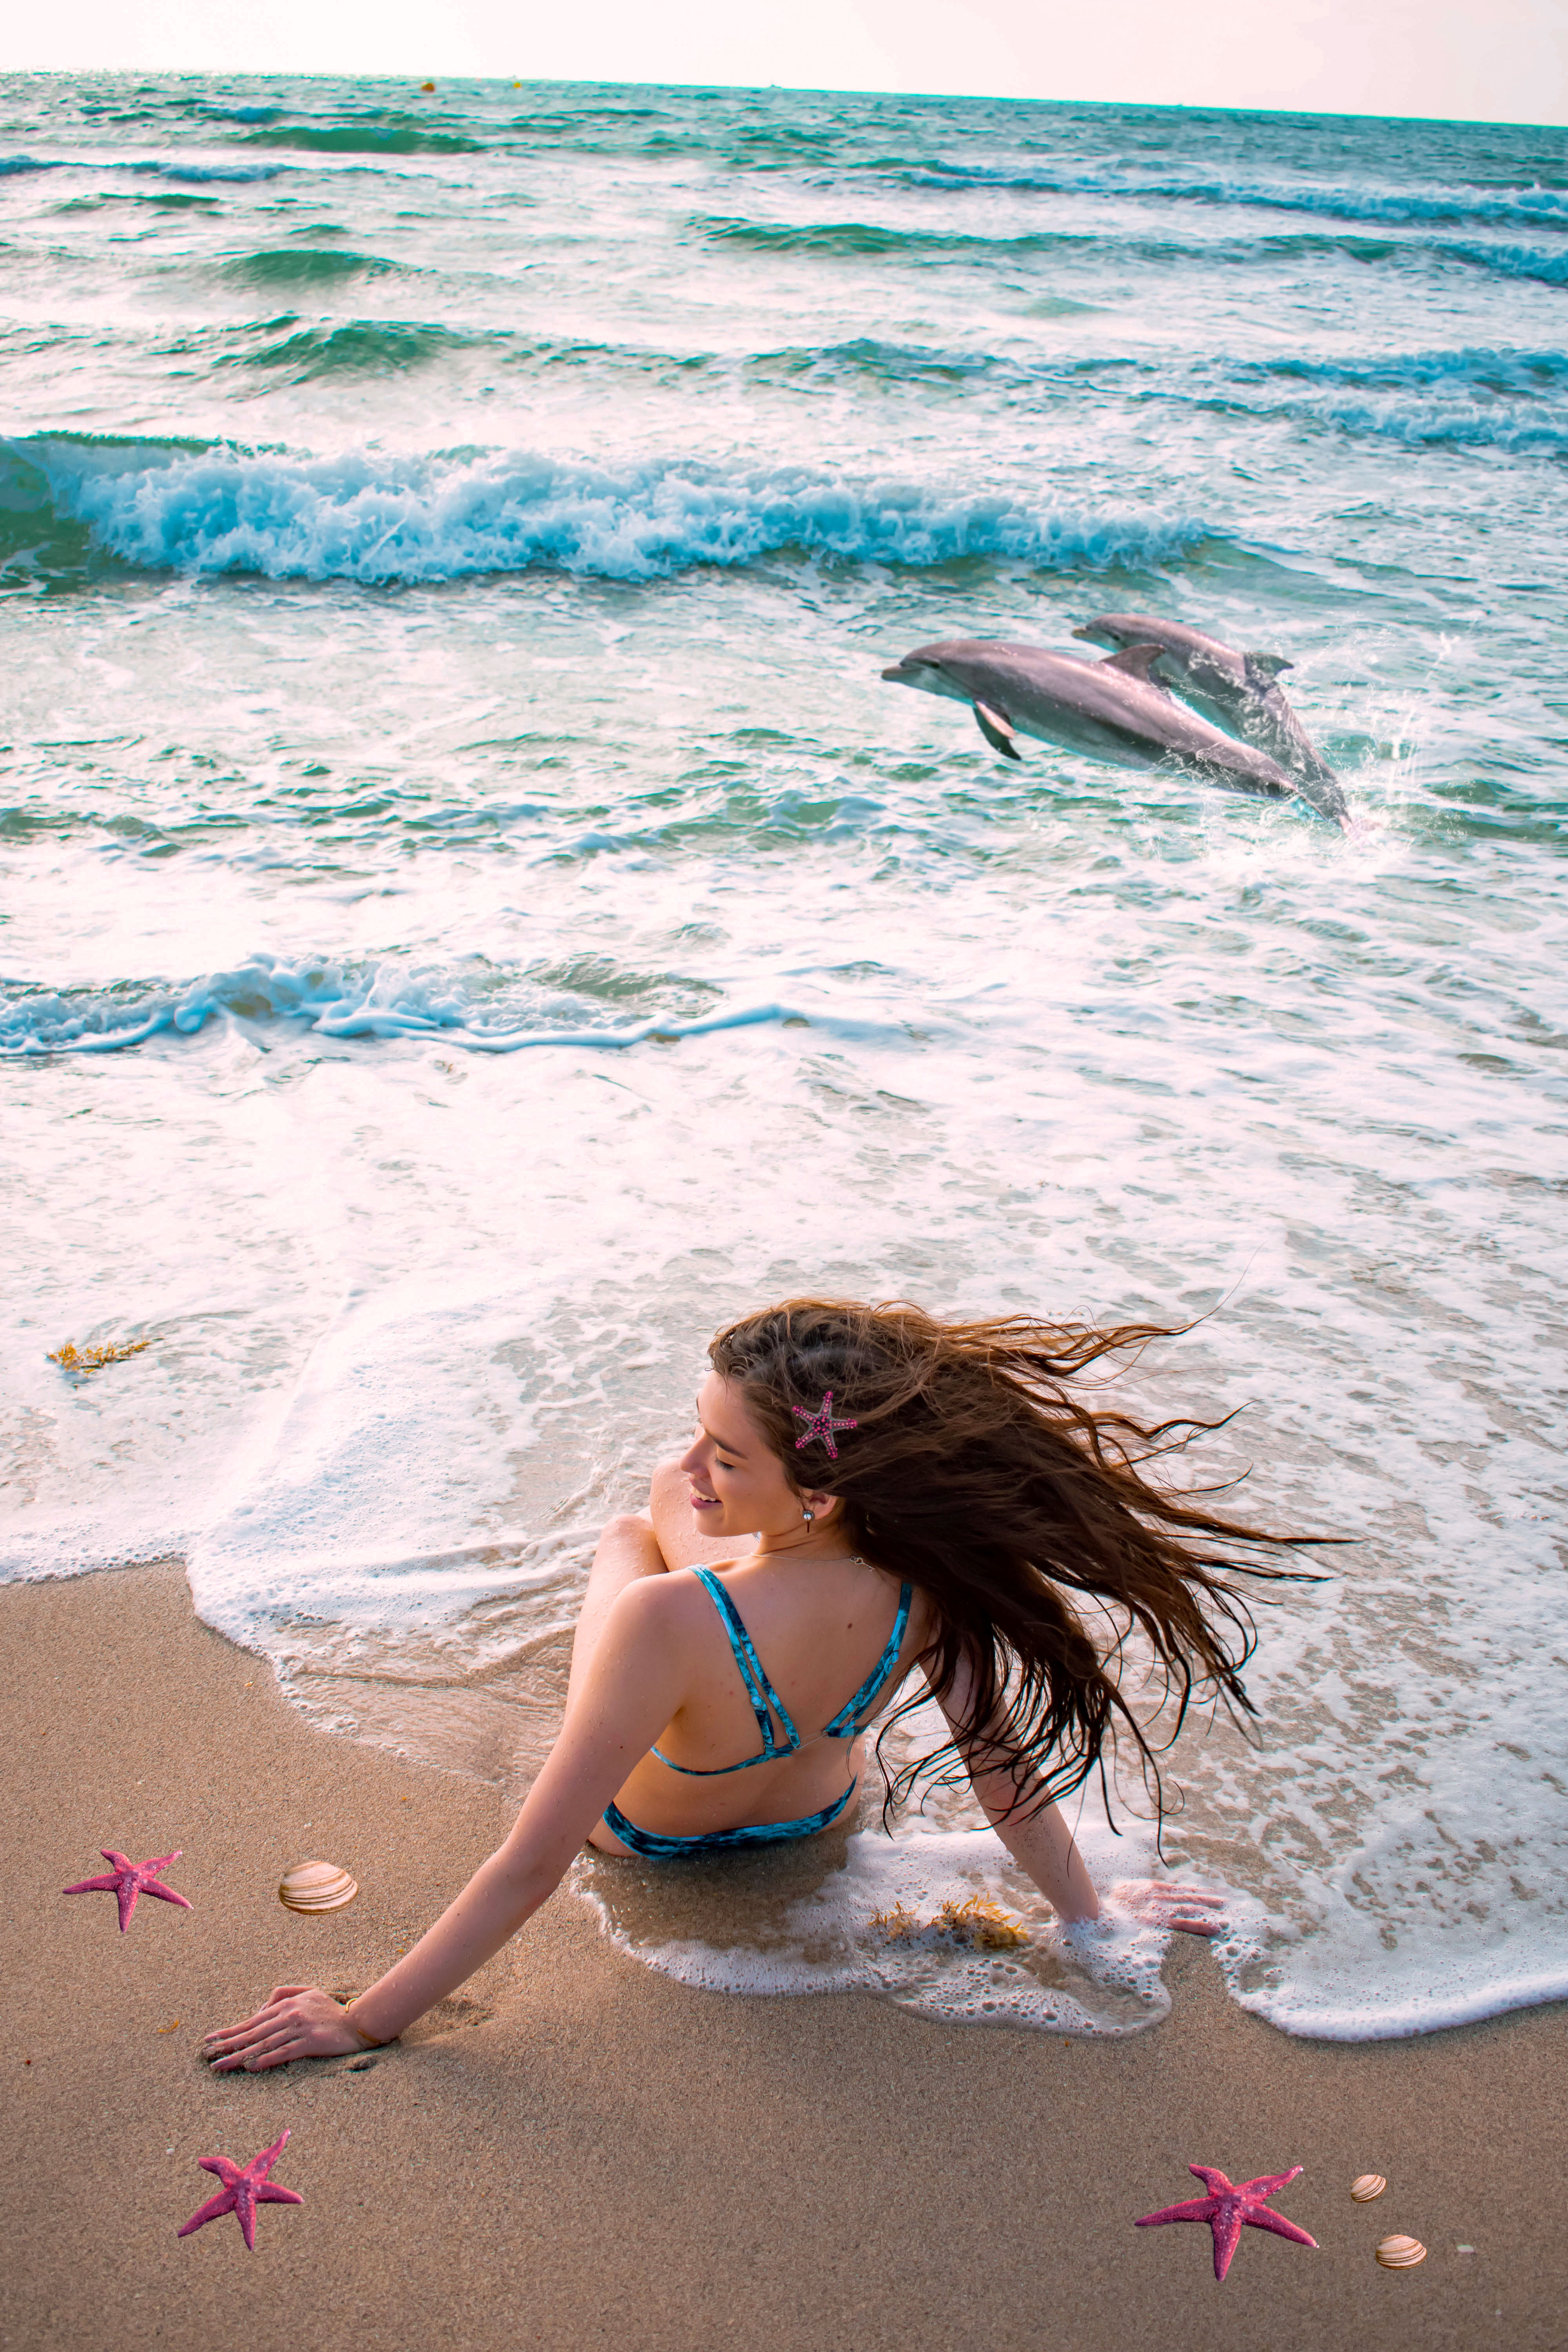 Eva Phan of Eva Darling south beach miami florida dolphins dreamy edit surrealism photoshop shein swimsuit bikini inexpensive trendy swimwear what to do in miami travel guide travel blogger long brown hair brunette beach waves